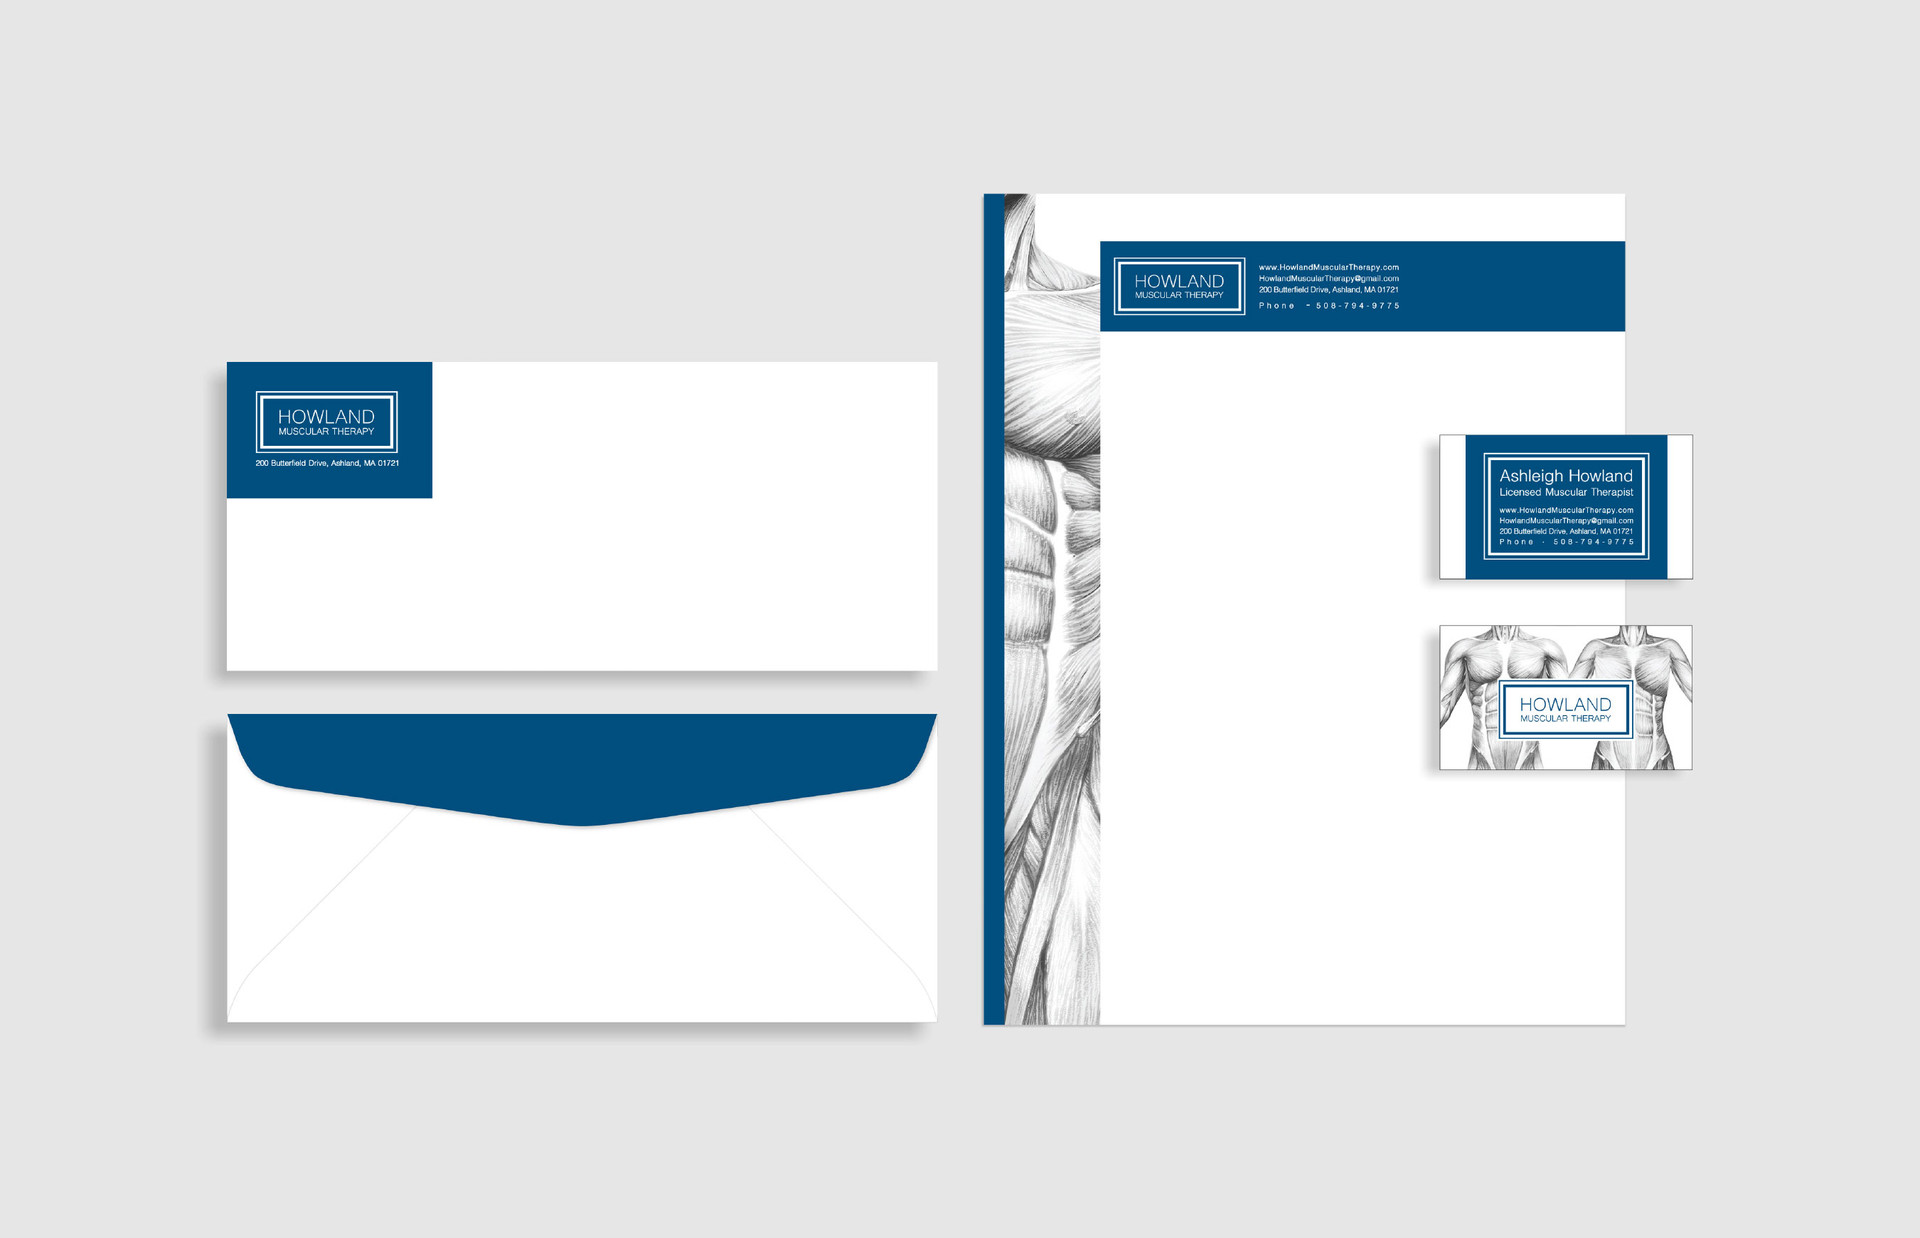 BRANDING, PRINT DESIGN, STATIONERY